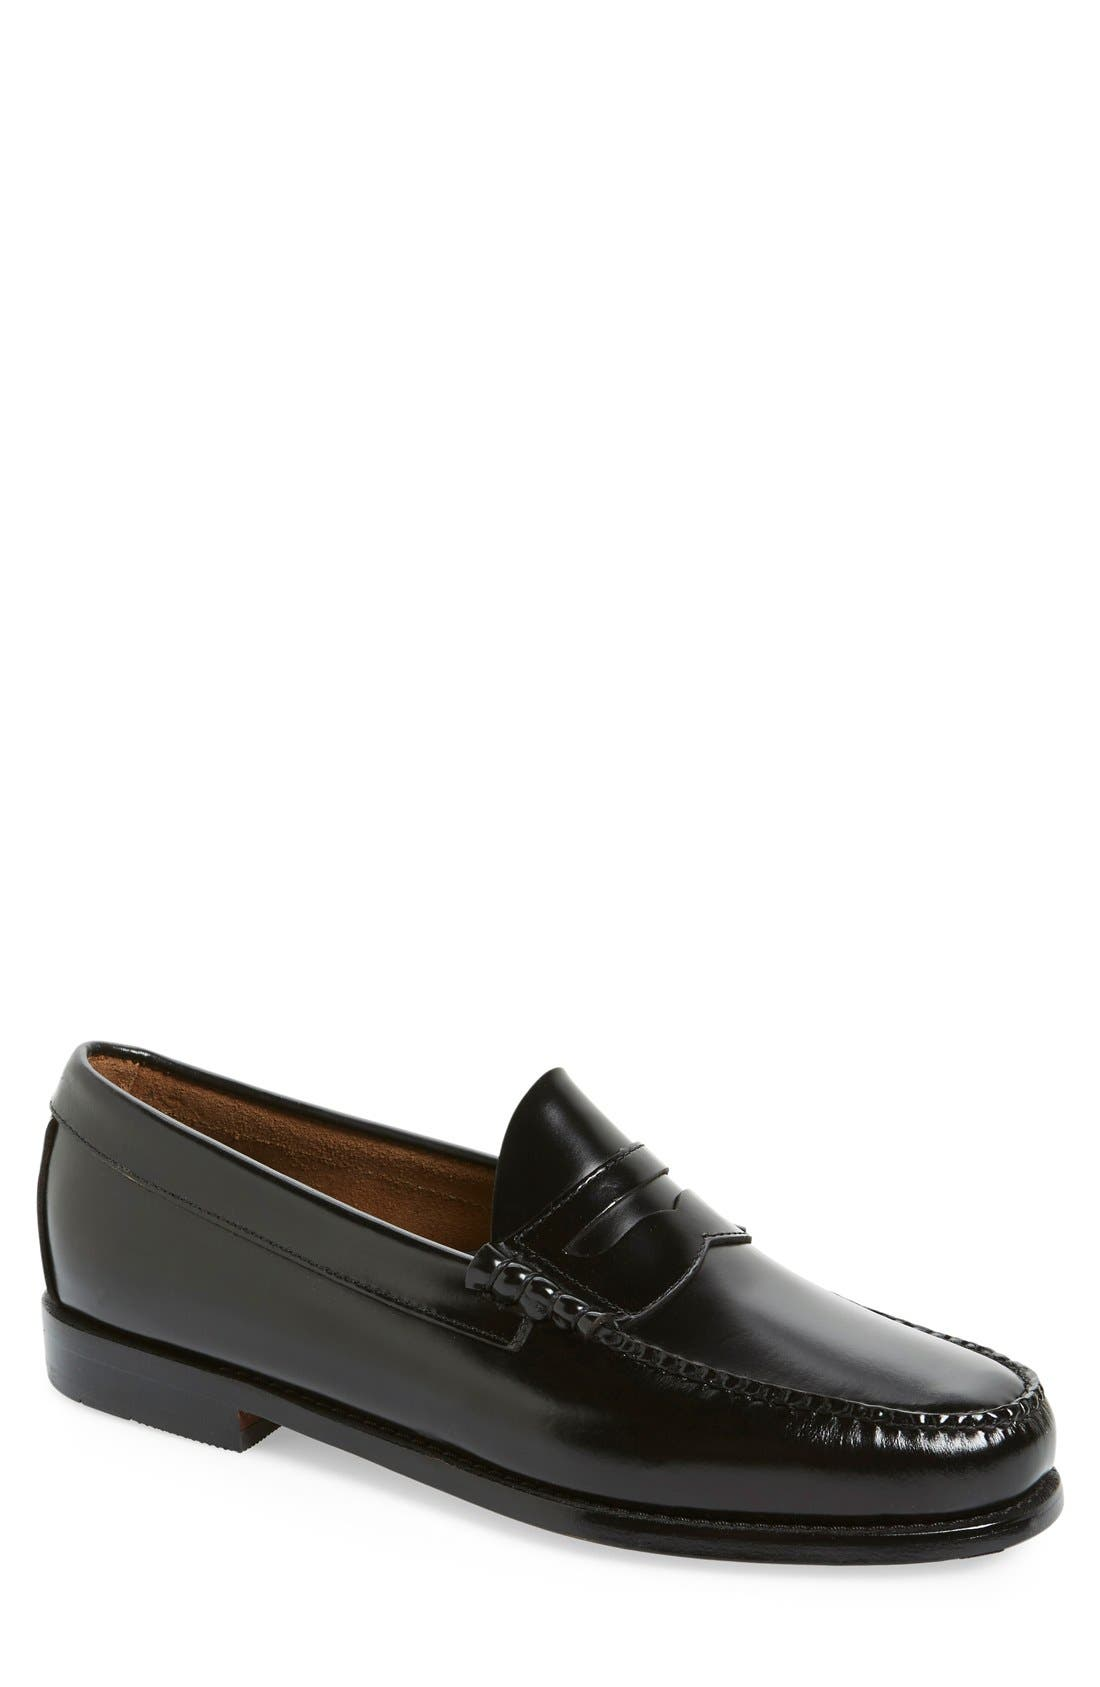 'Larson - Weejuns' Penny Loafer,                             Main thumbnail 1, color,                             Black Leather